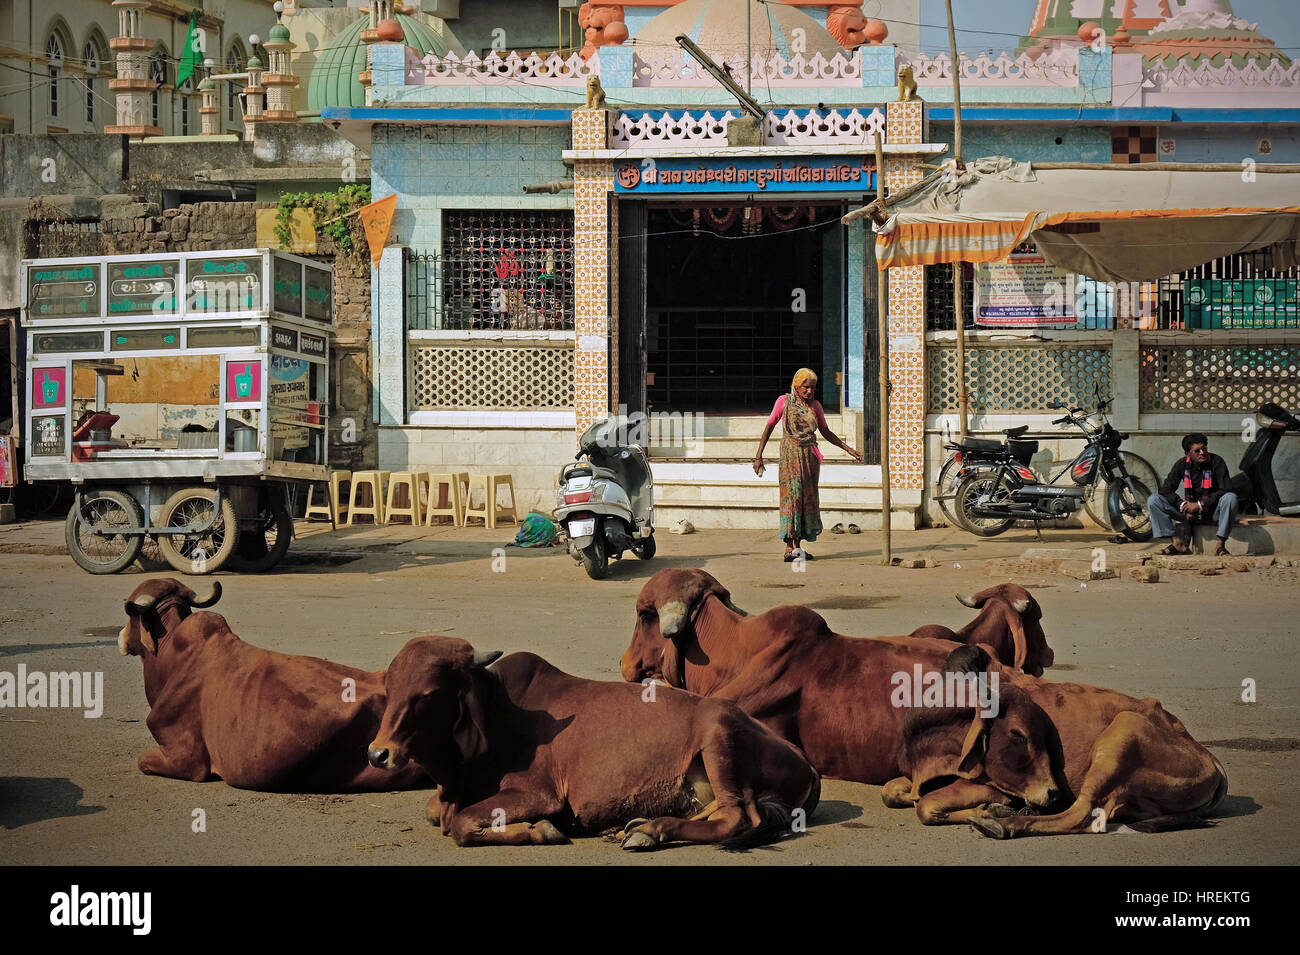 An unidentified worshipper leaves a Hindu temple with an audience of cattle lying in the road in Gondal, India. - Stock Image